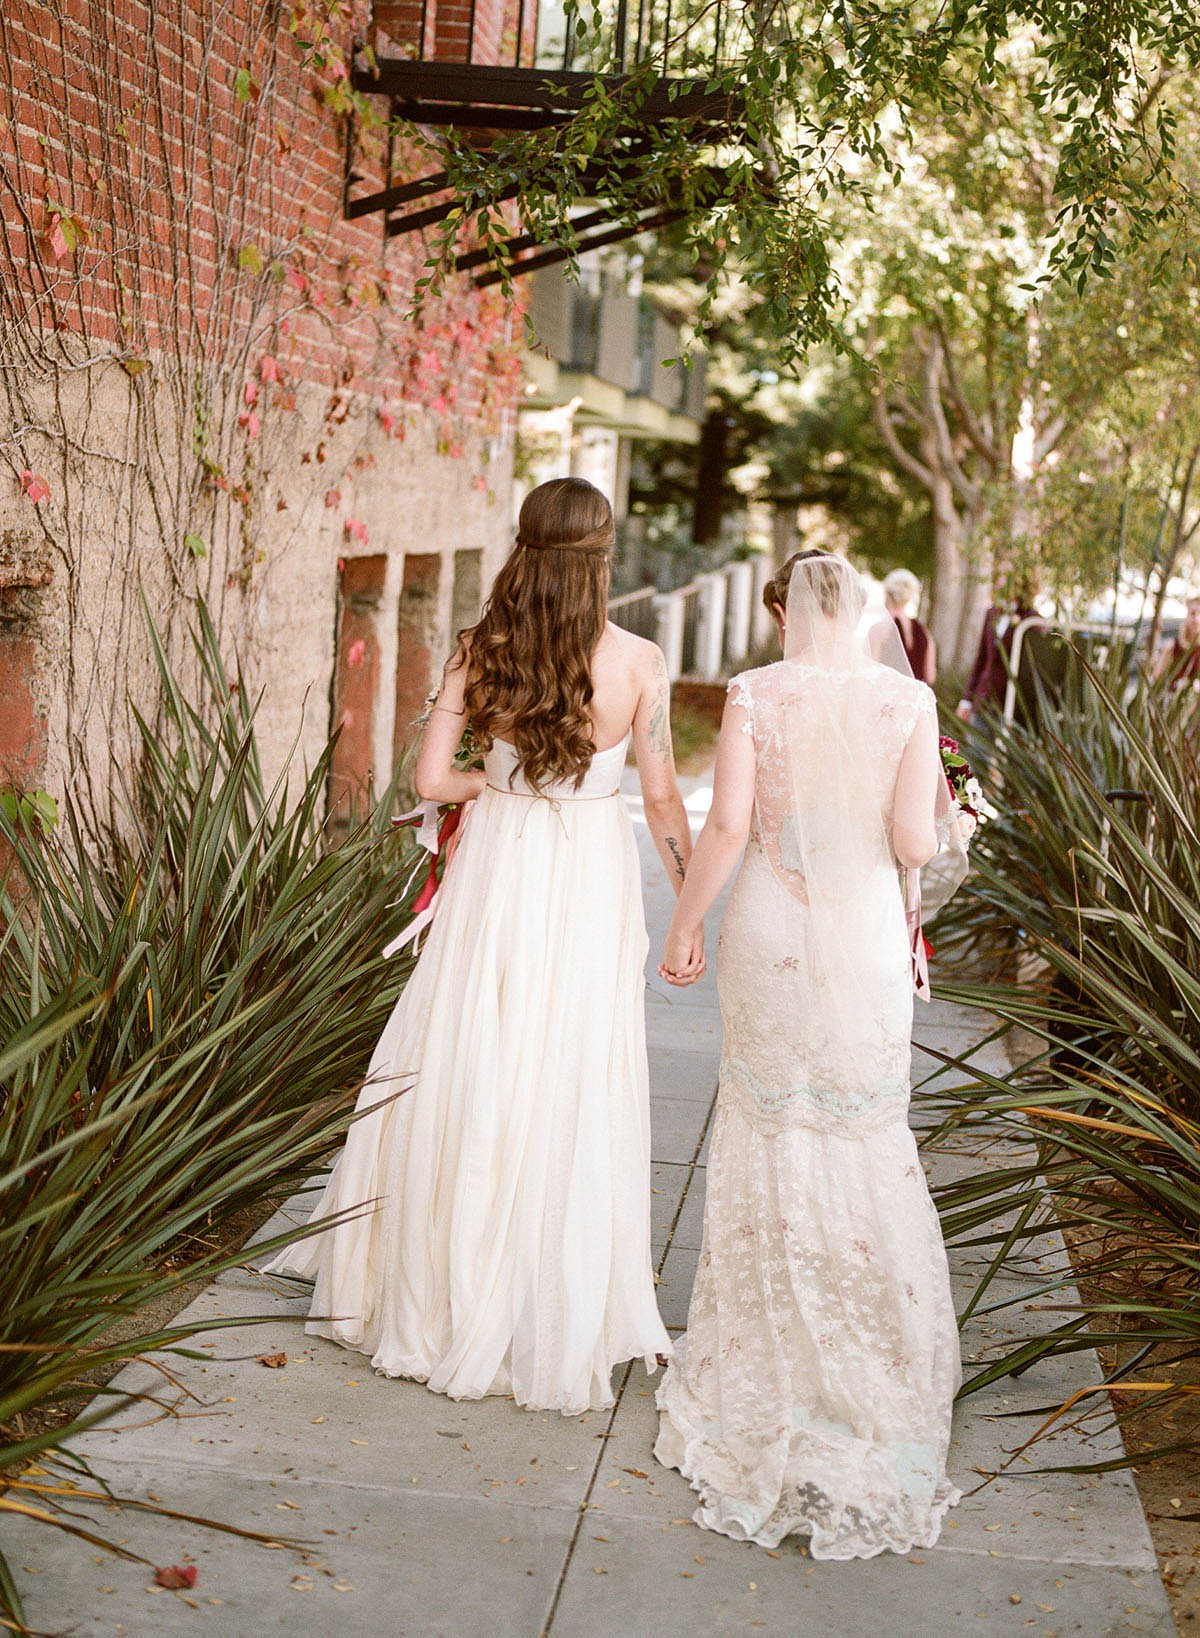 3-two-brides-hand-holding.jpg